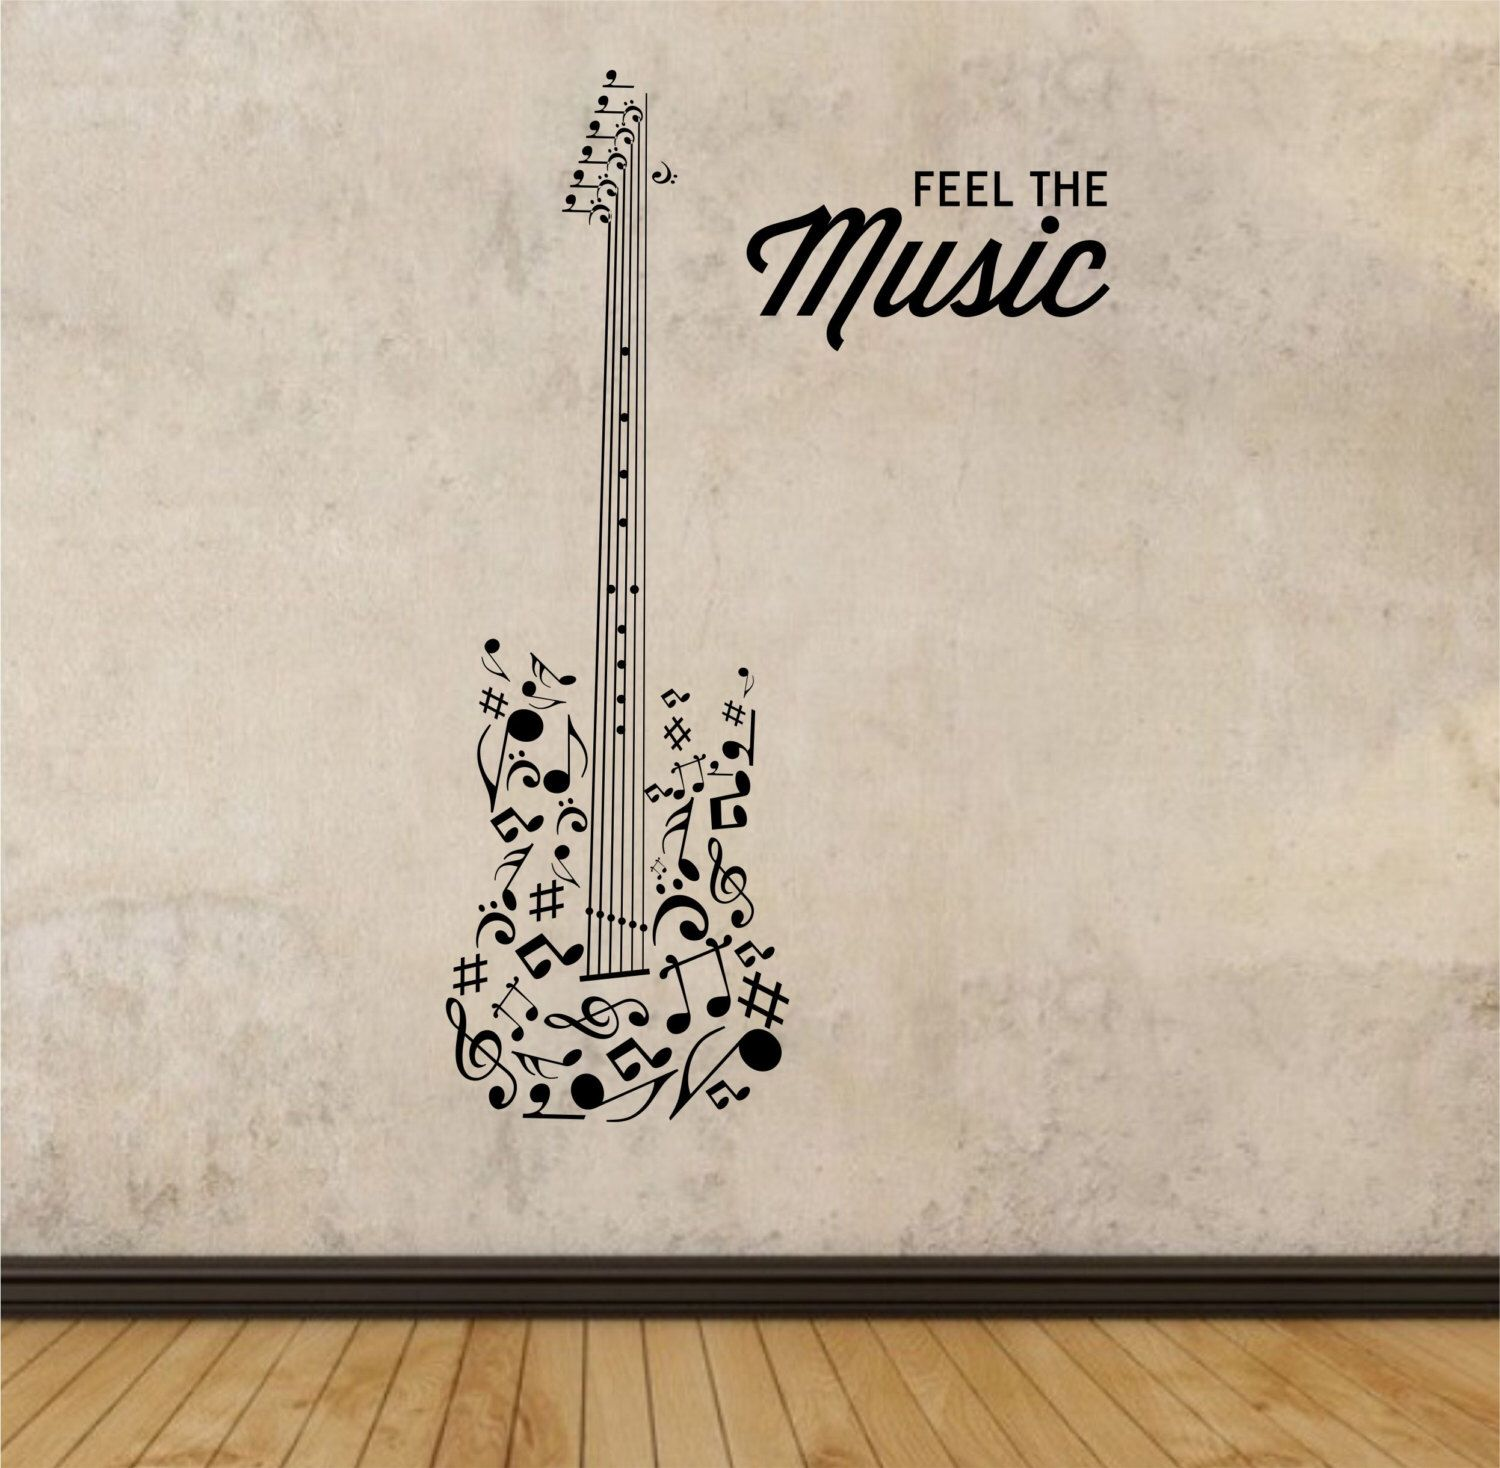 Guitar Decor For Bedroom Guitar Wall Decal Feel The Music Quote Vinyl Sticker Art